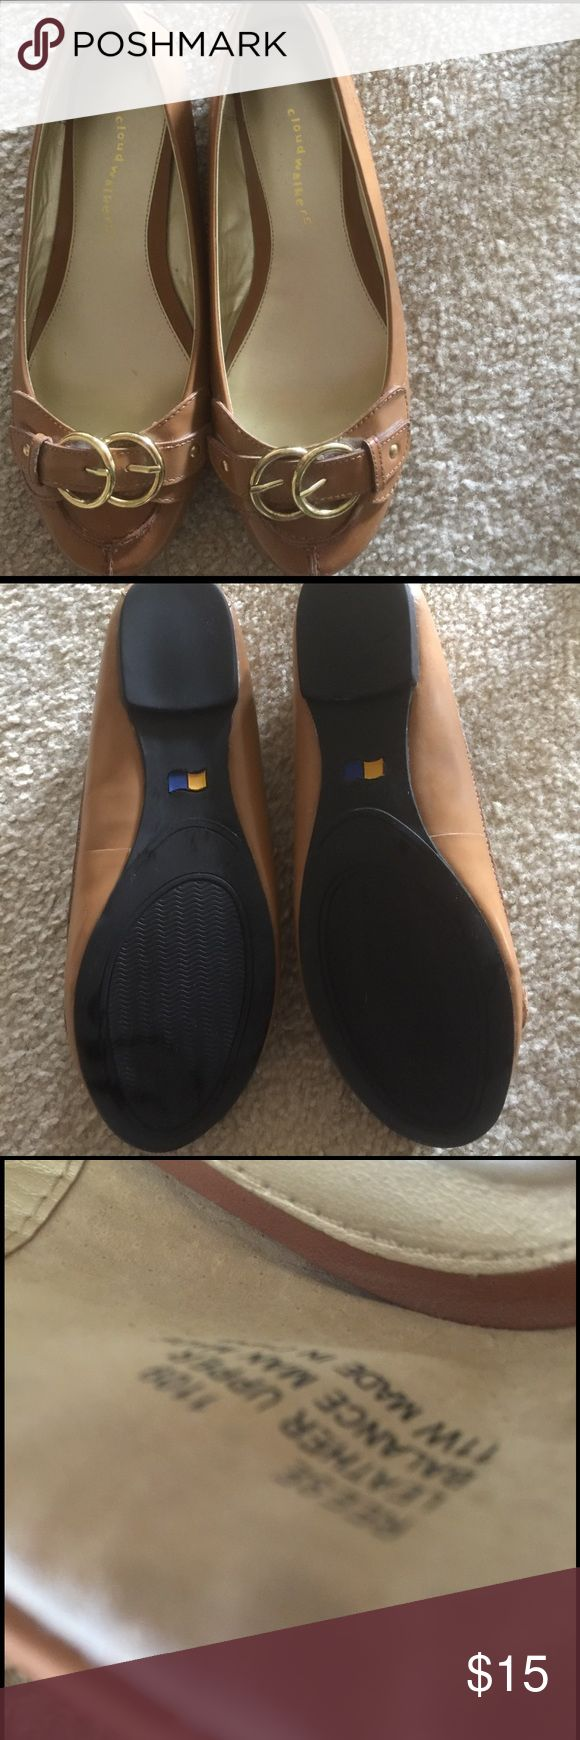 Women's wide flats Avenue tan  flats w gold tone buckle. Round toe. Never worn. Shoes are Wide fit 11W cloudwalkers Shoes Flats & Loafers